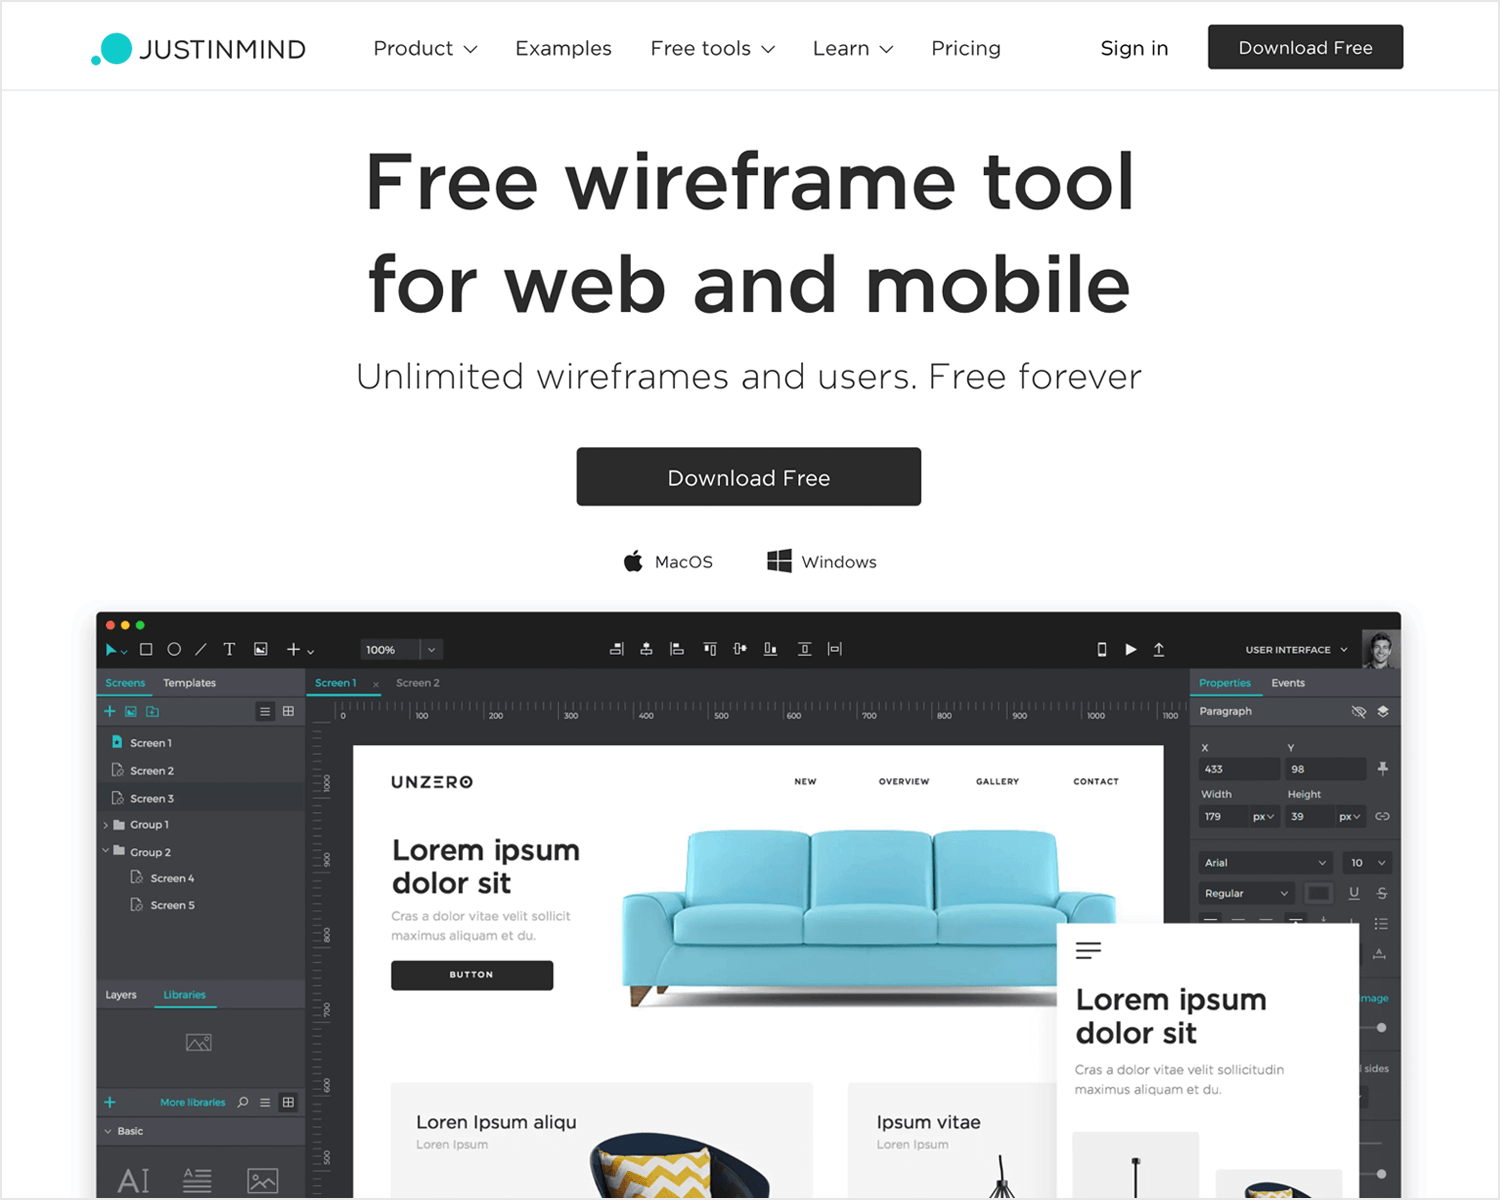 Best wireframe design tools - Justinmind